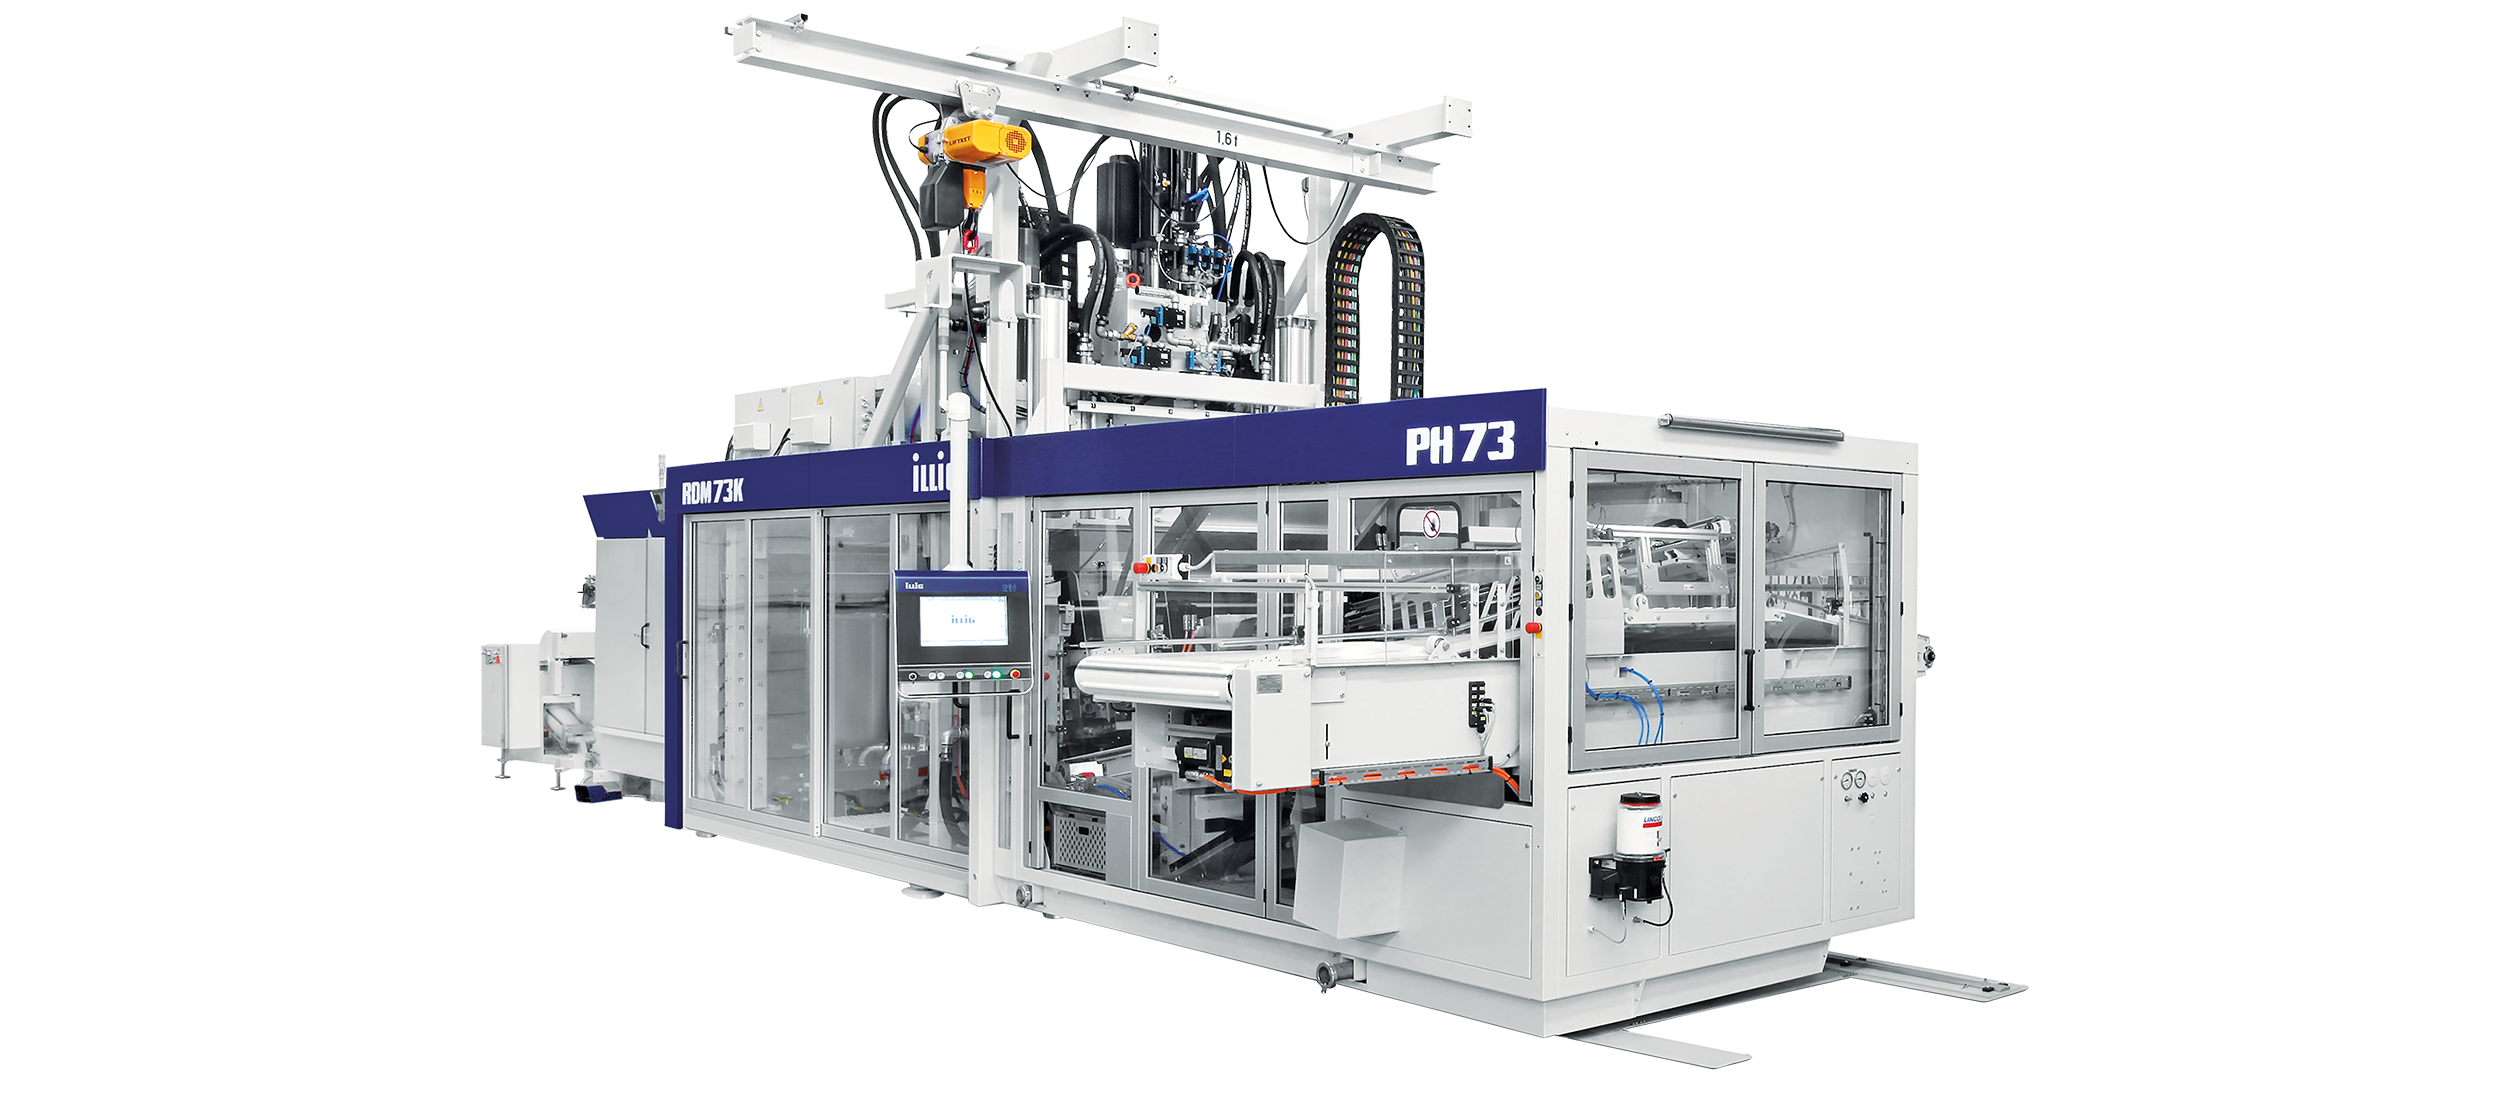 ILLIG IC-RDM 73K automatic roll-fed machine for forming/punching operation | © ILLIG Maschinenbau